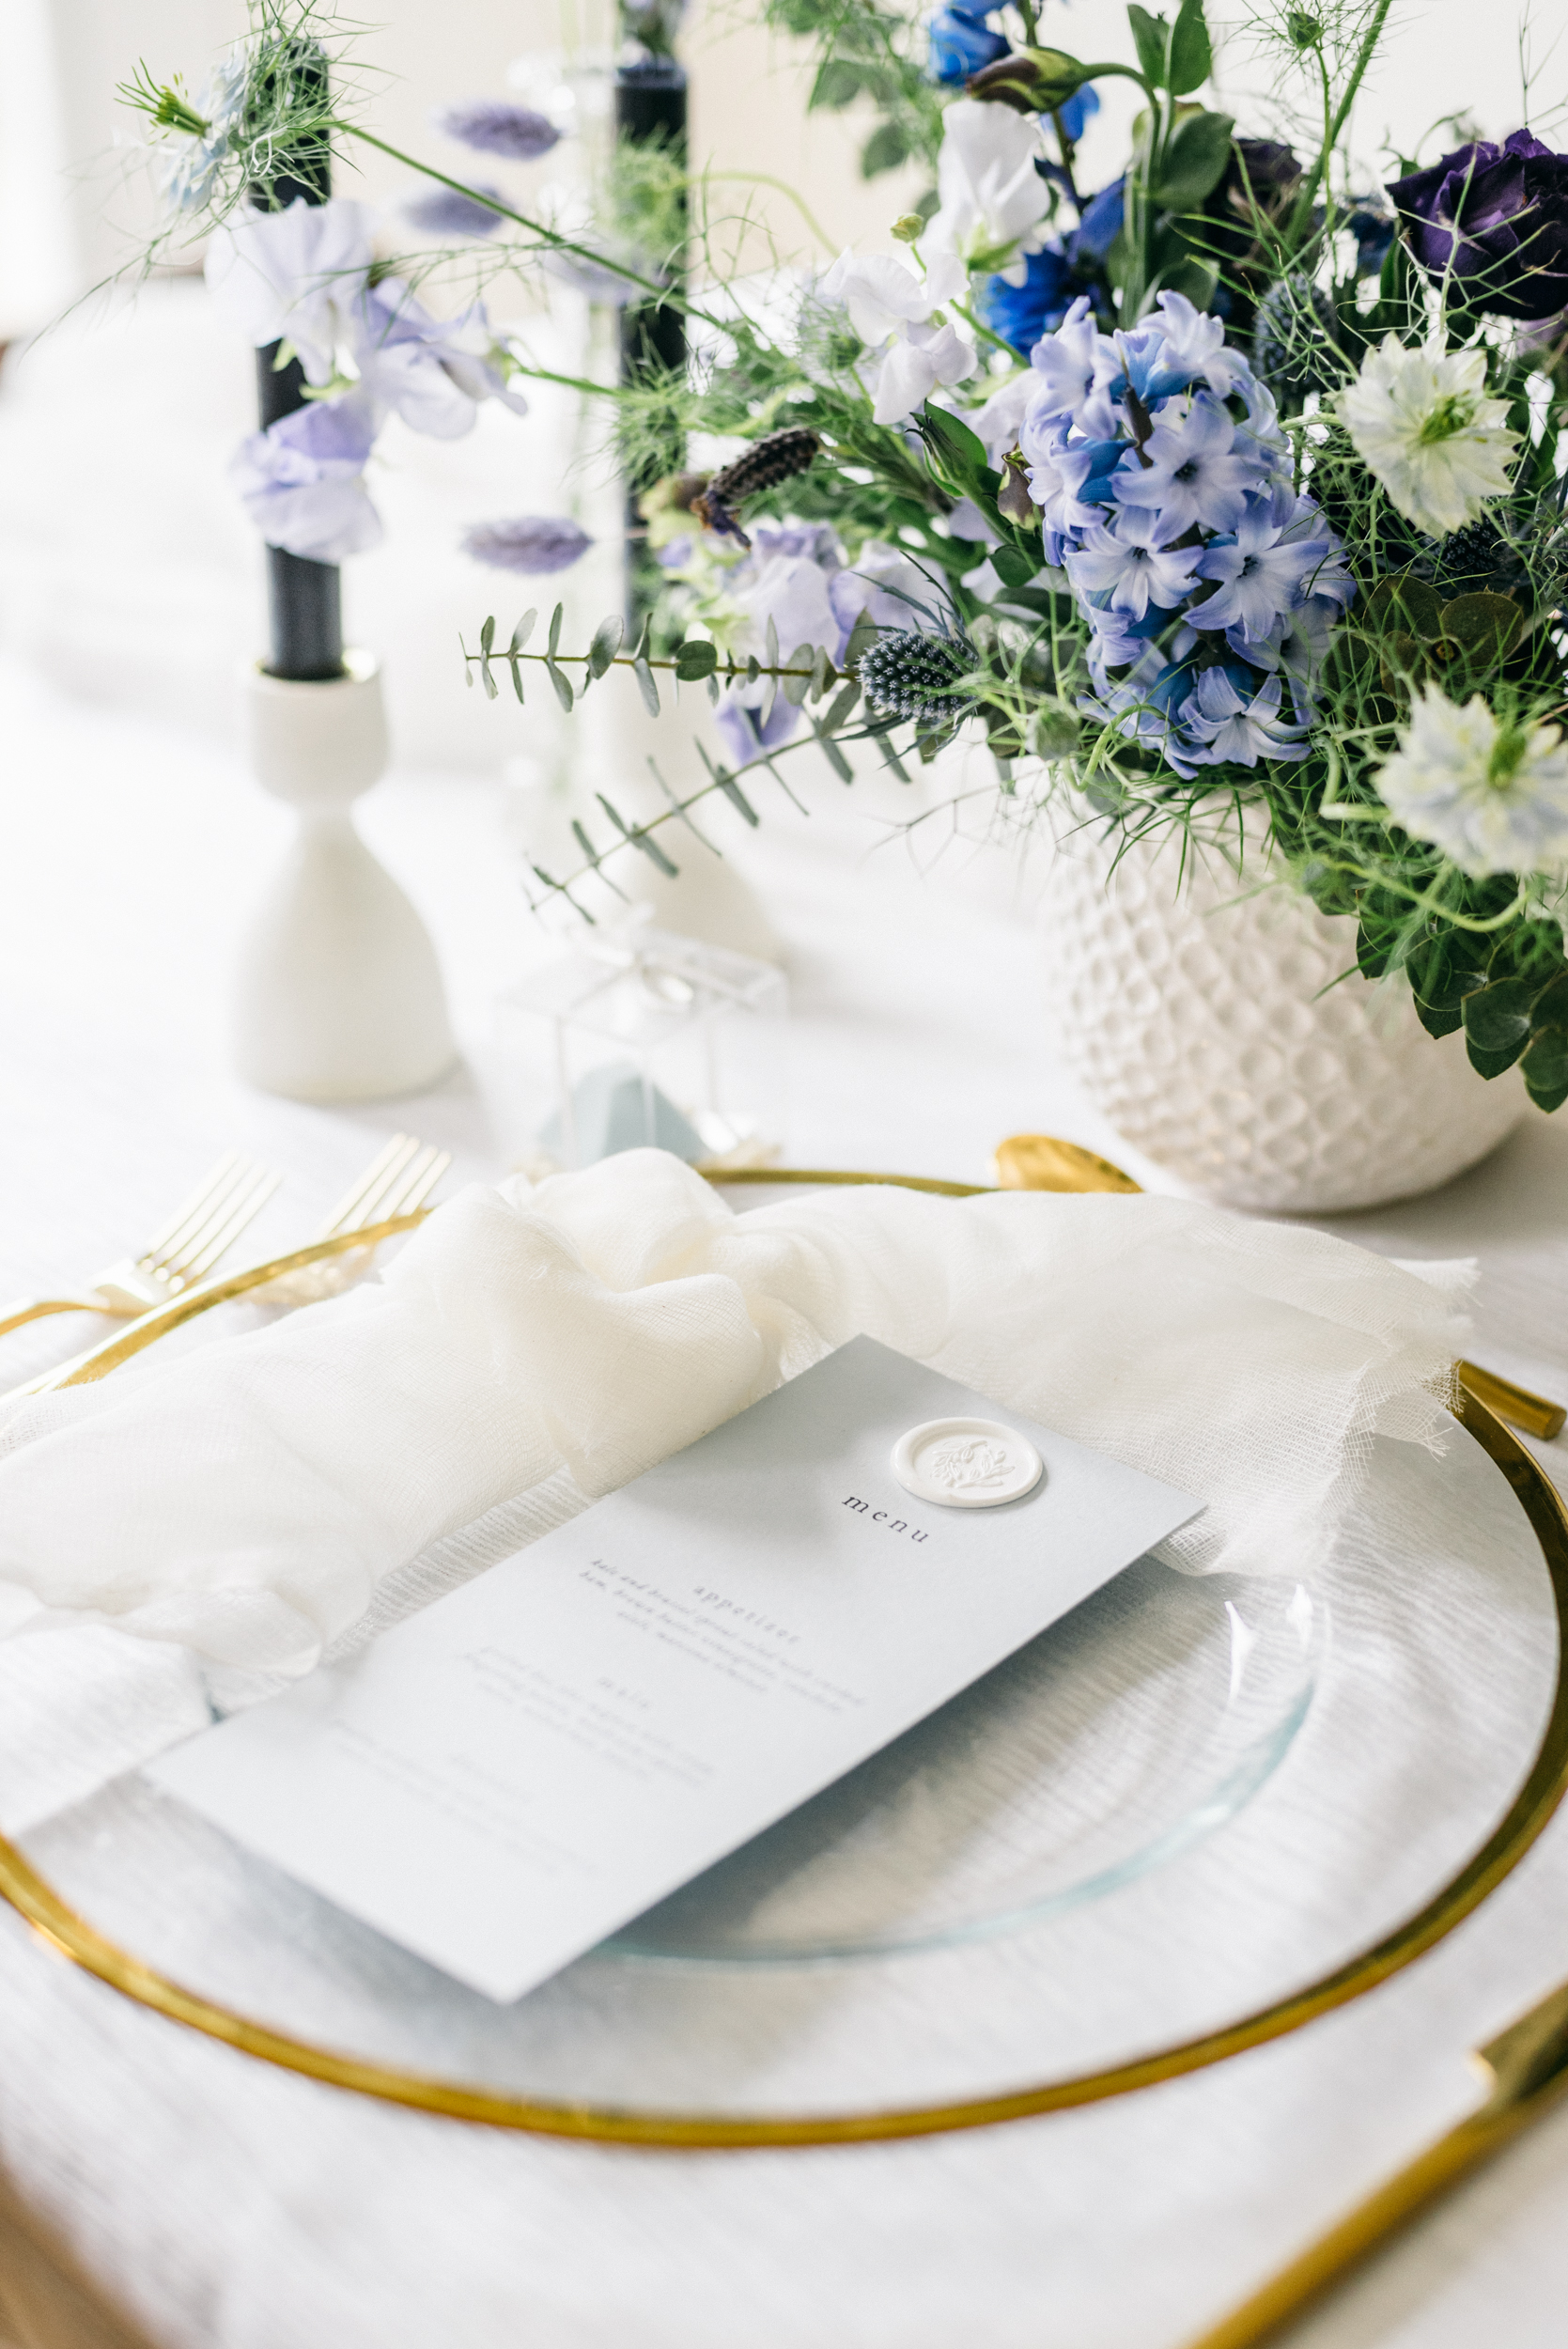 styled-tablescapes-47.jpg